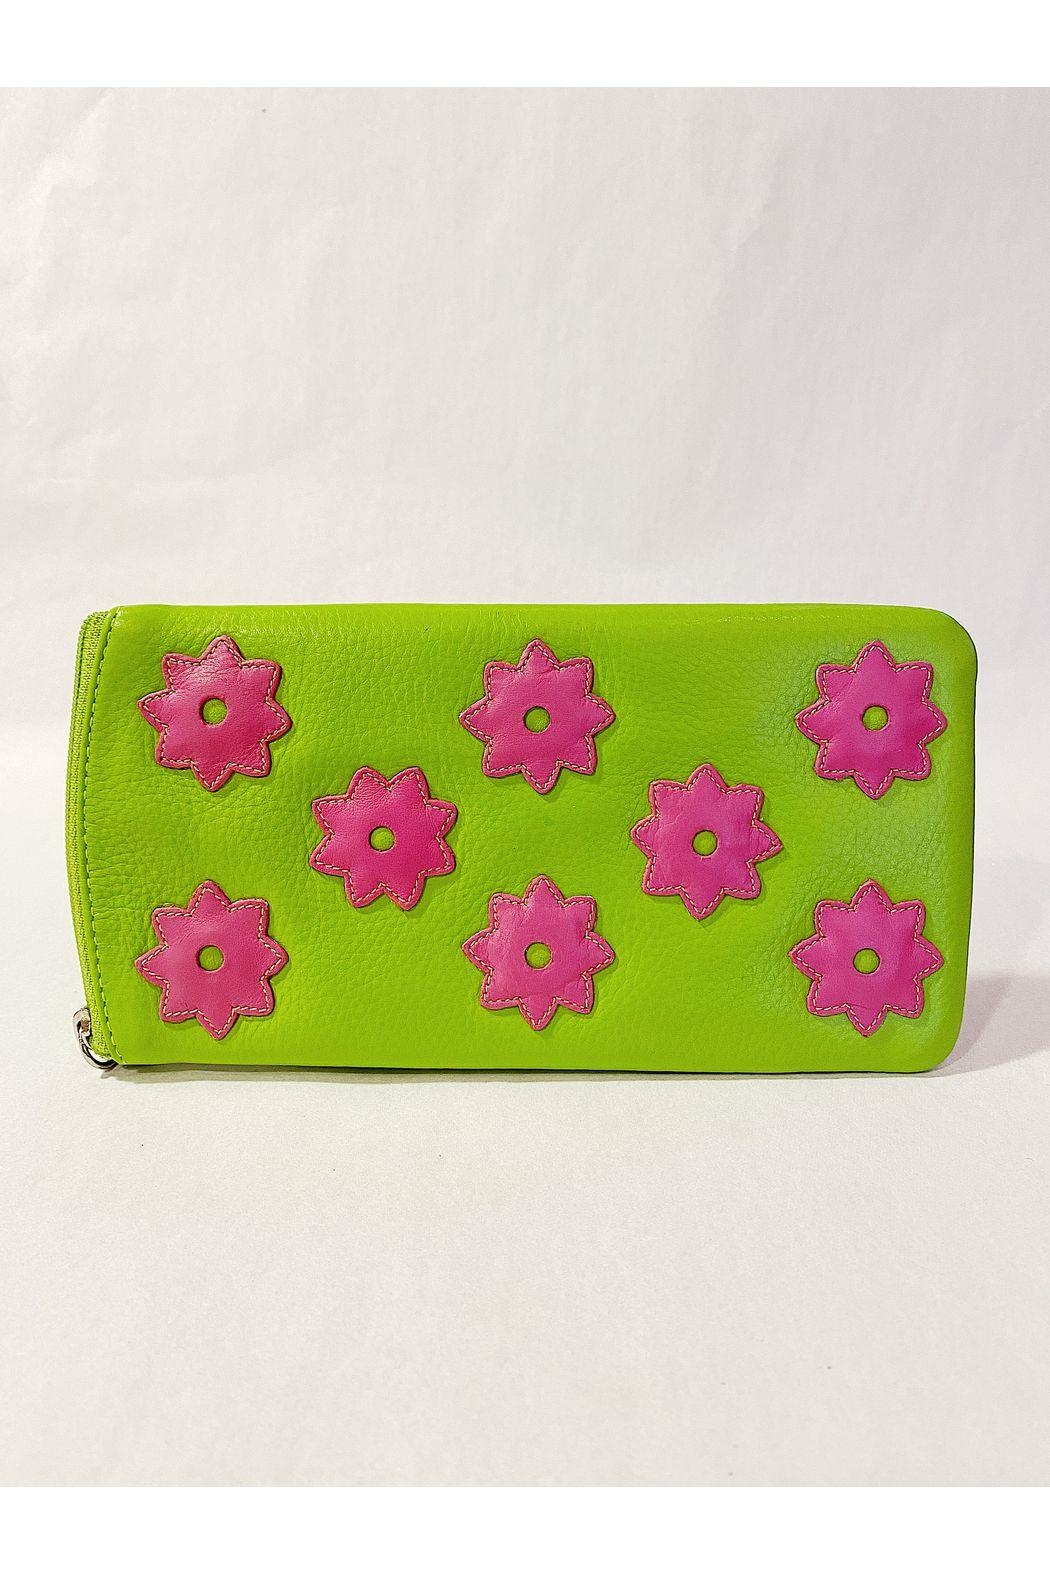 International Leather Industries Hot Pink & Green Flower Eyeglass Case - Main Image